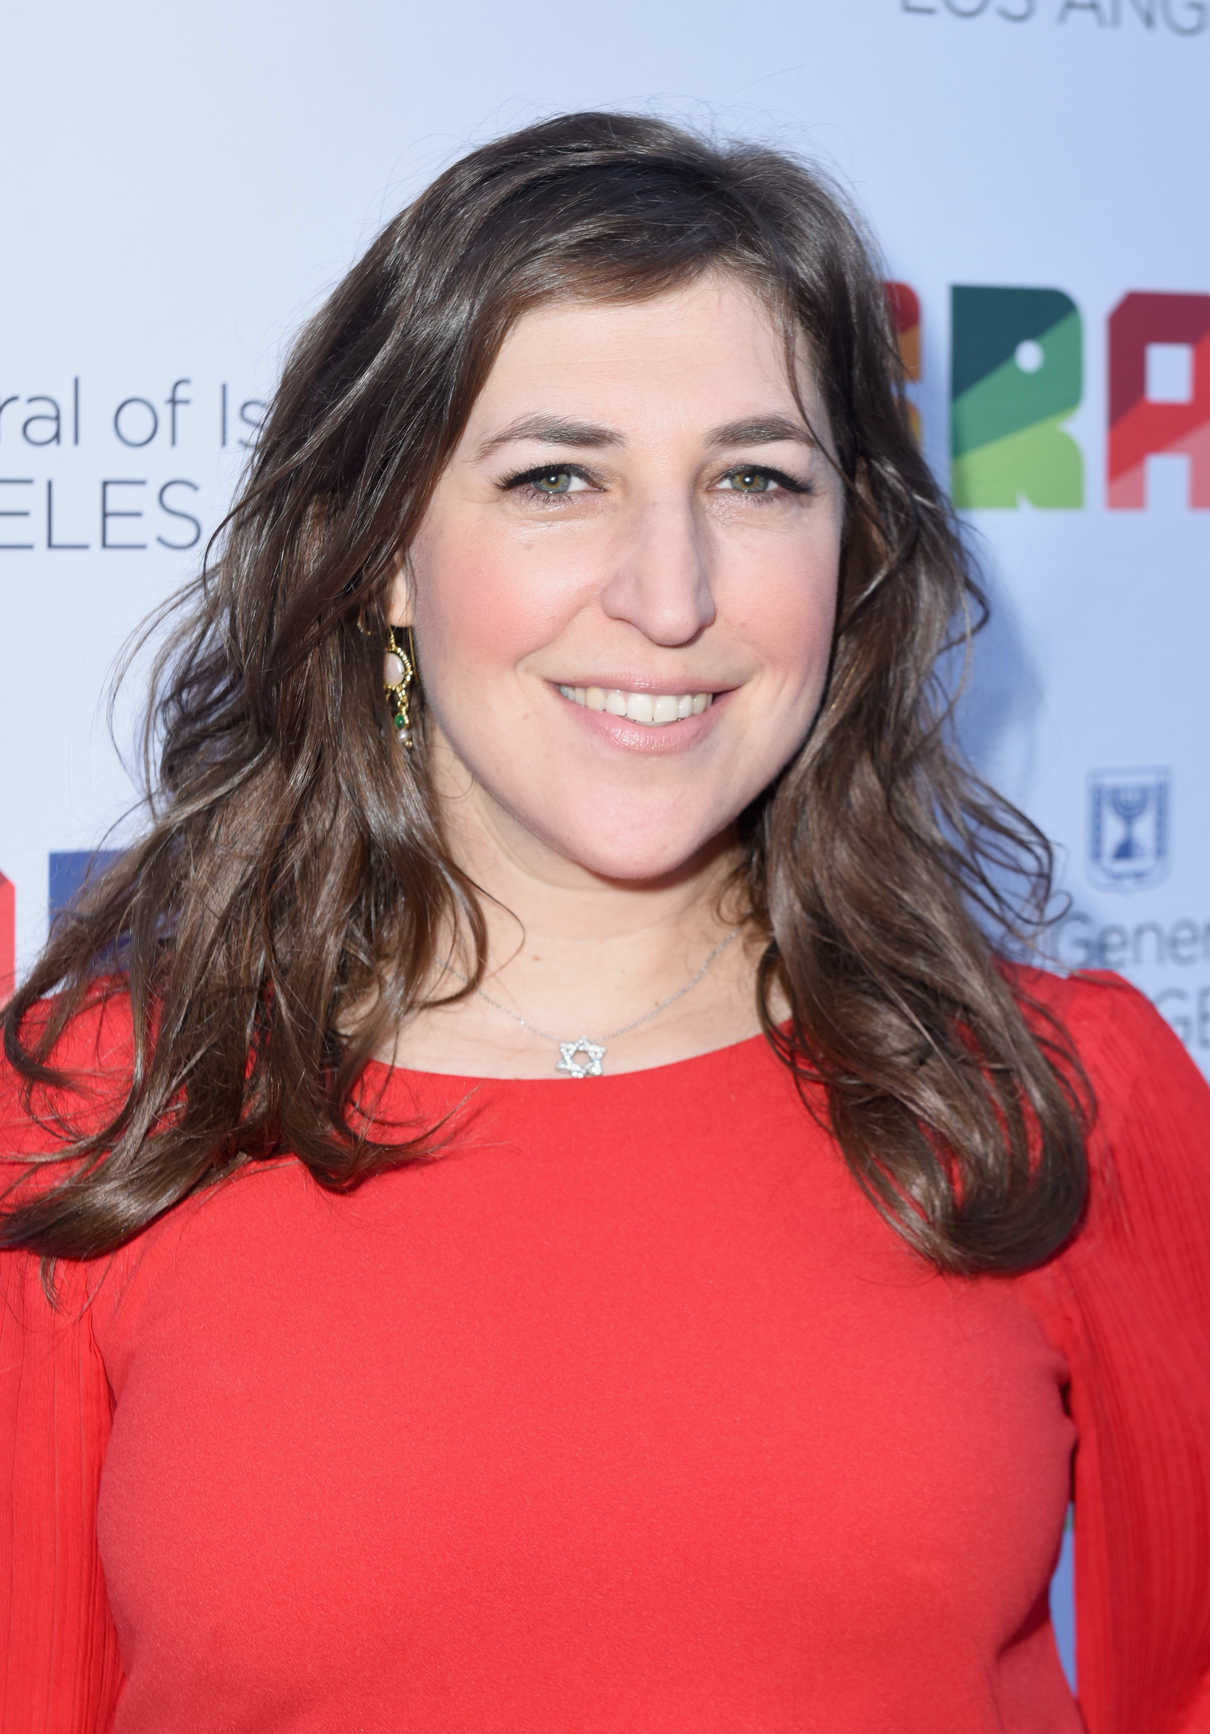 Mayim Bialik at the 70th Anniversary of Israel Celebration in Universal City 06/10/2018-5